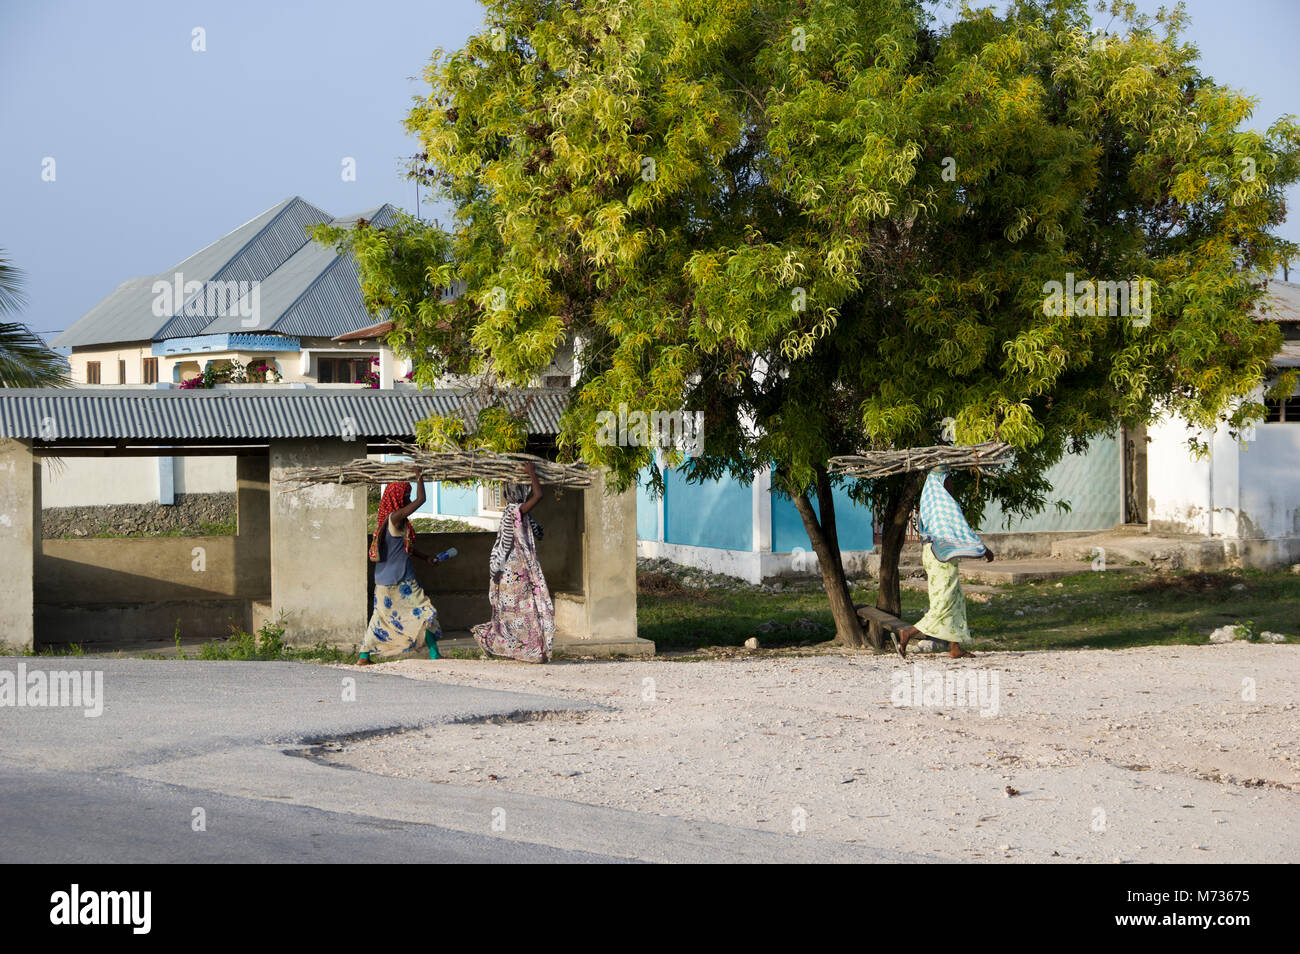 Swahili women walking with faggots of sticks on their heads past a large green tree and traditional zanzibar houses - Stock Image